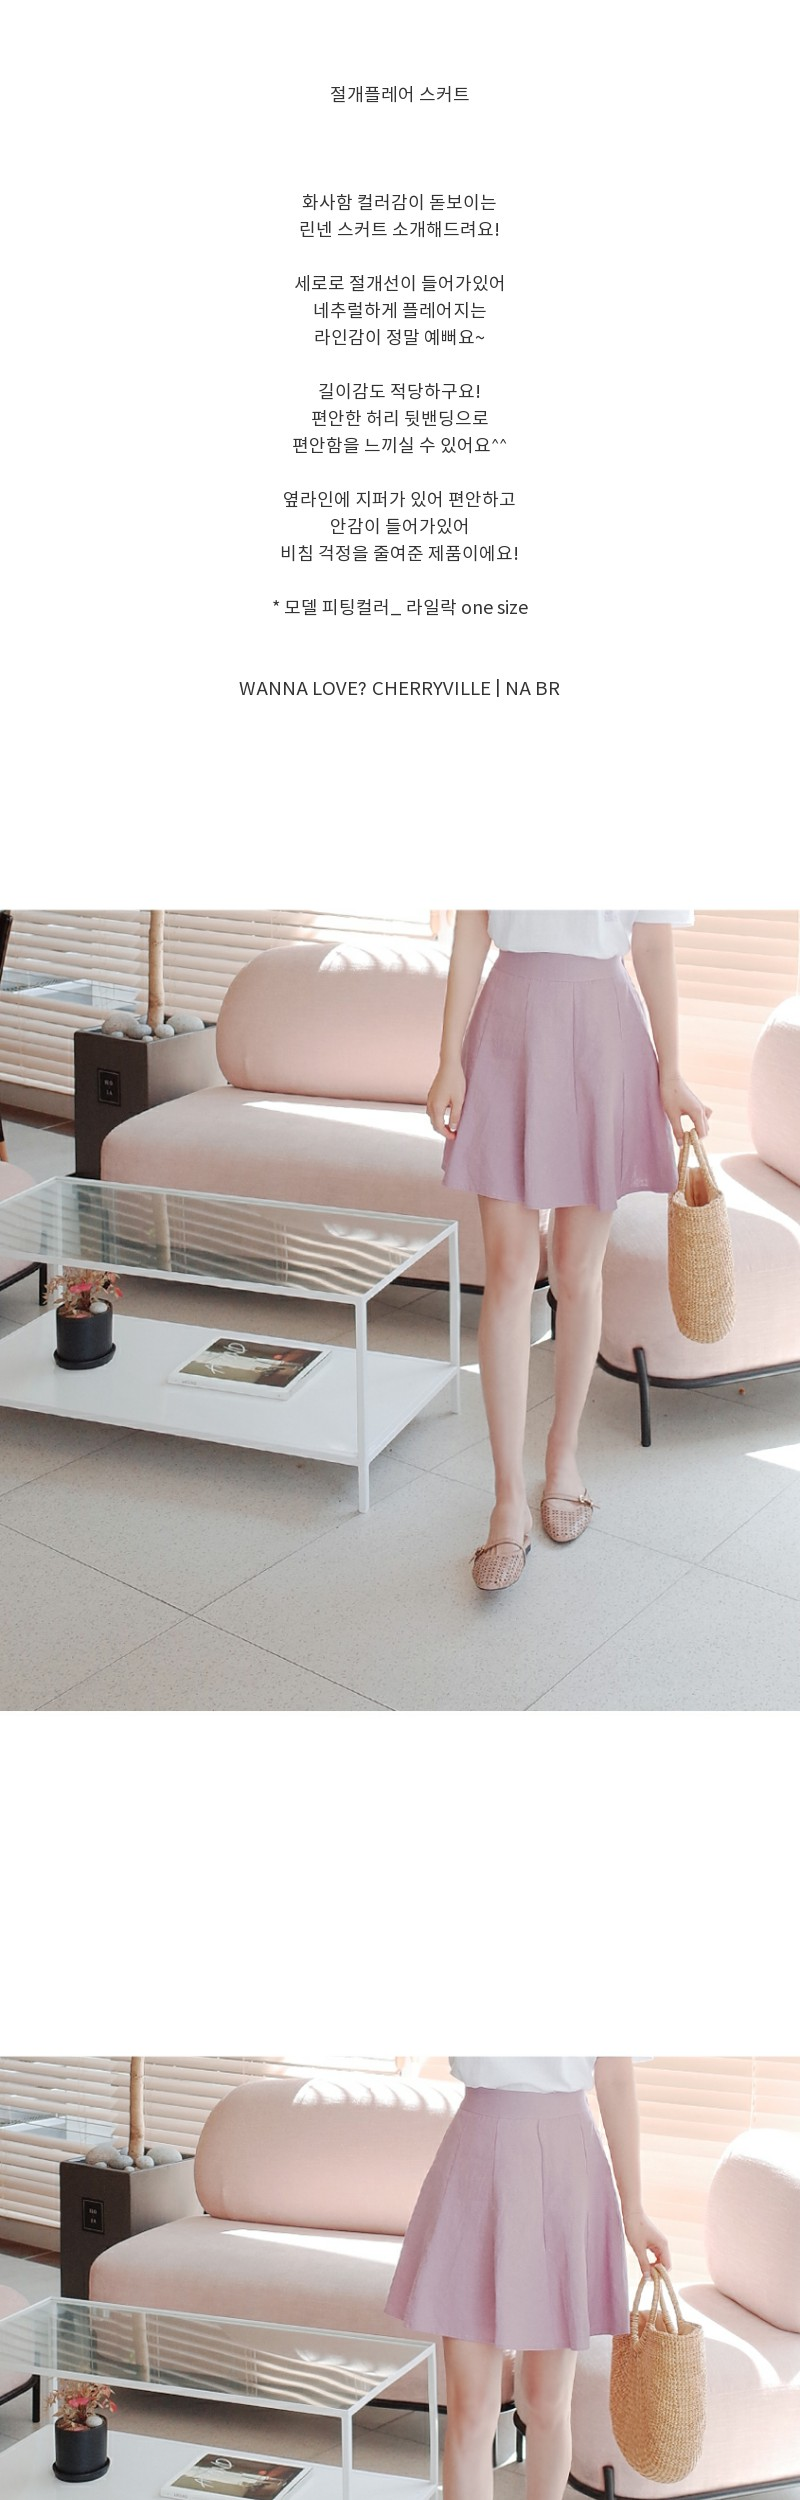 Incision flare skirt